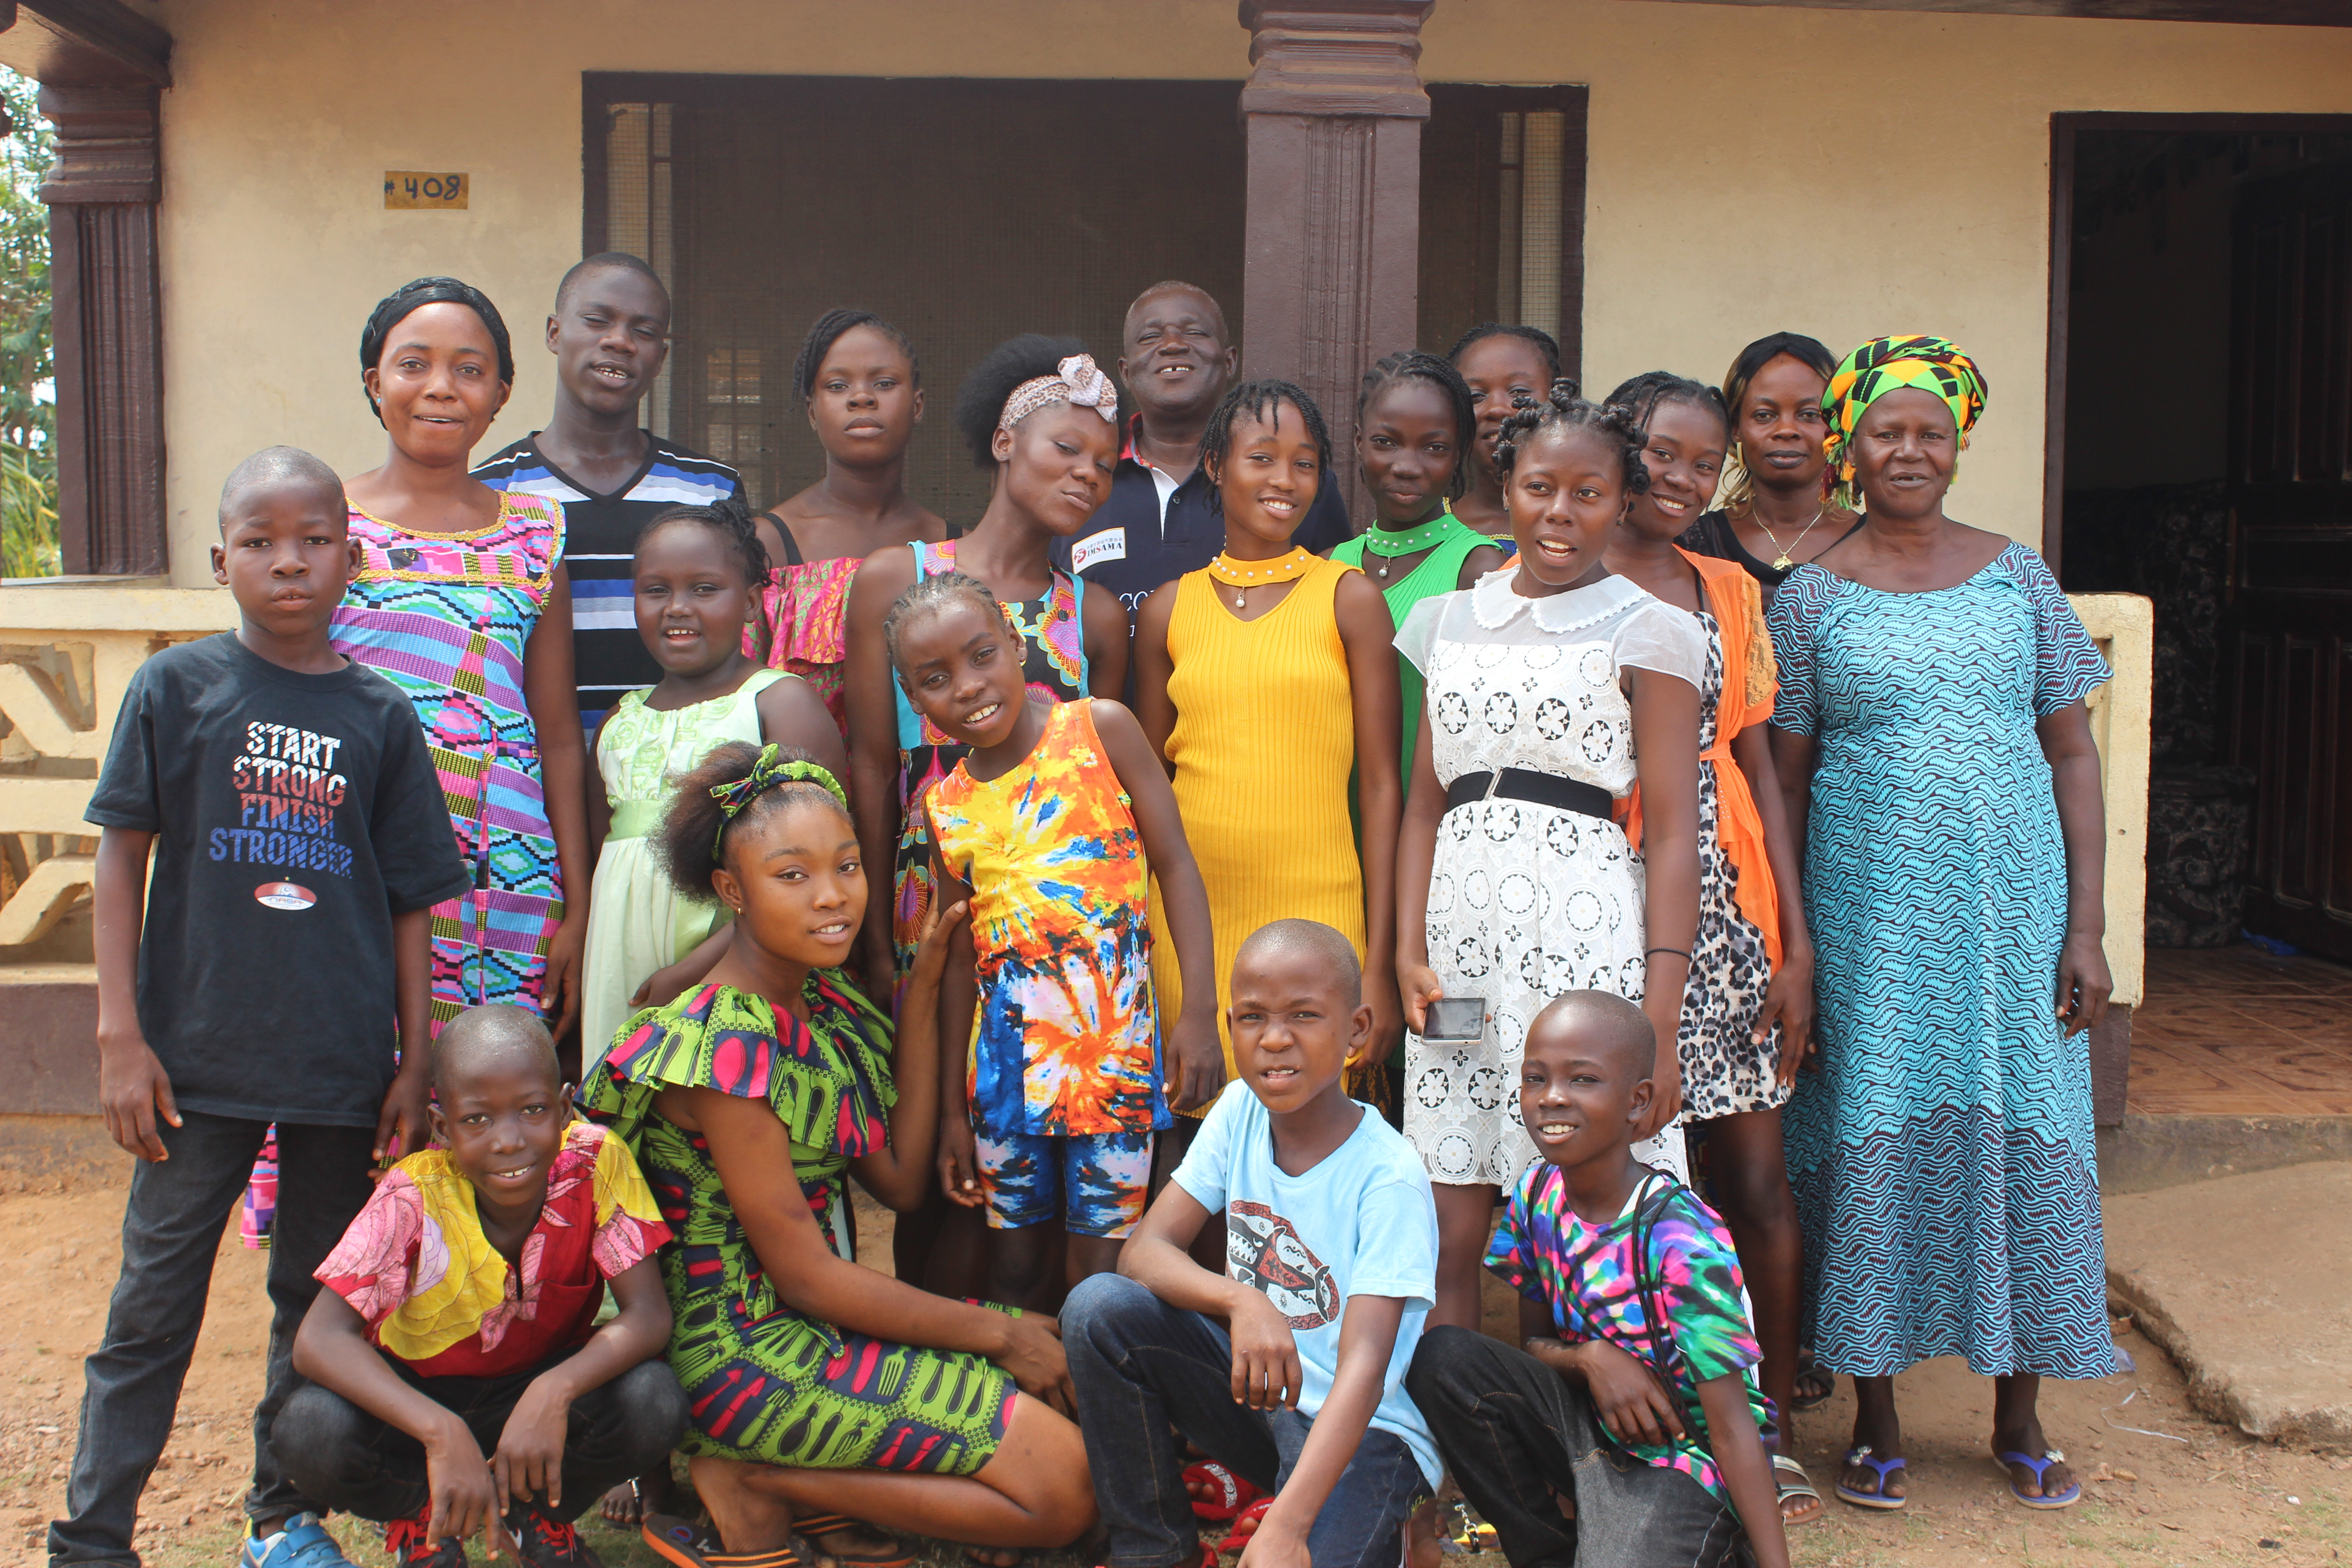 Benetta with their children in Buchanan. We also honor Ma Nyondaynieh, Otis' sister who is also a mother in this home and a very big help!